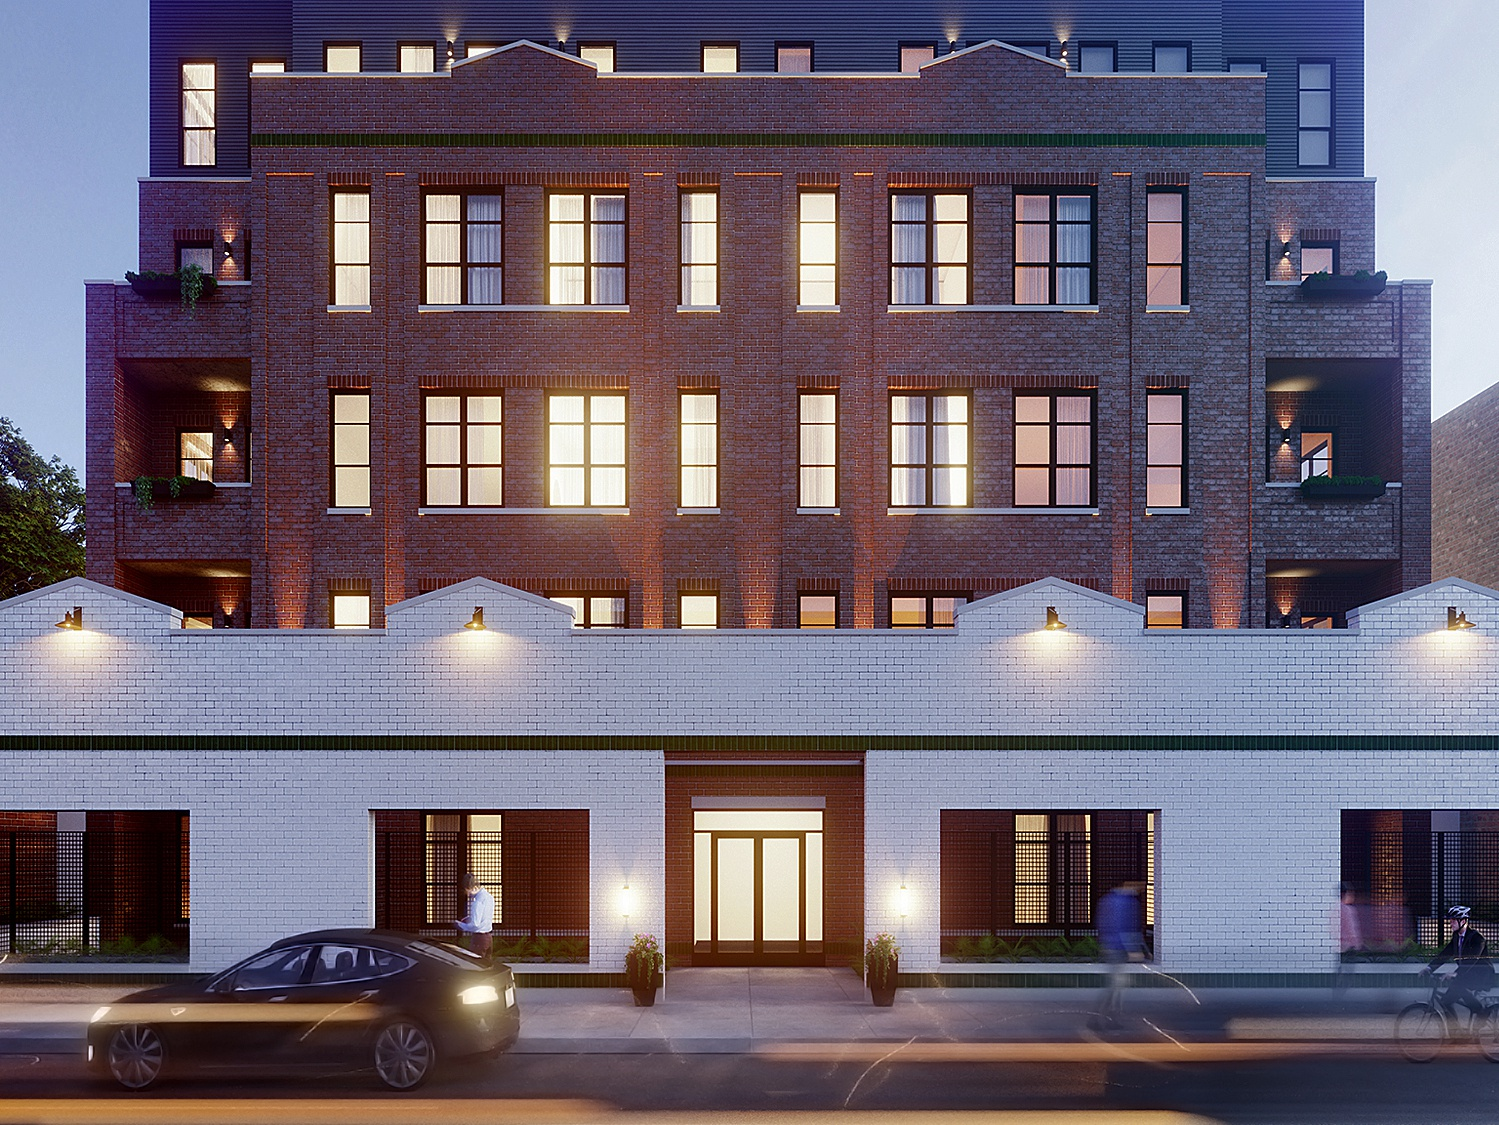 Architectural visualization of residence building in Chicago facade exterior design v-ray 3d modeling vray house cgi 3d view architecture cg illustration architectural visualization architectural 3dsmax visualization rendering 3d